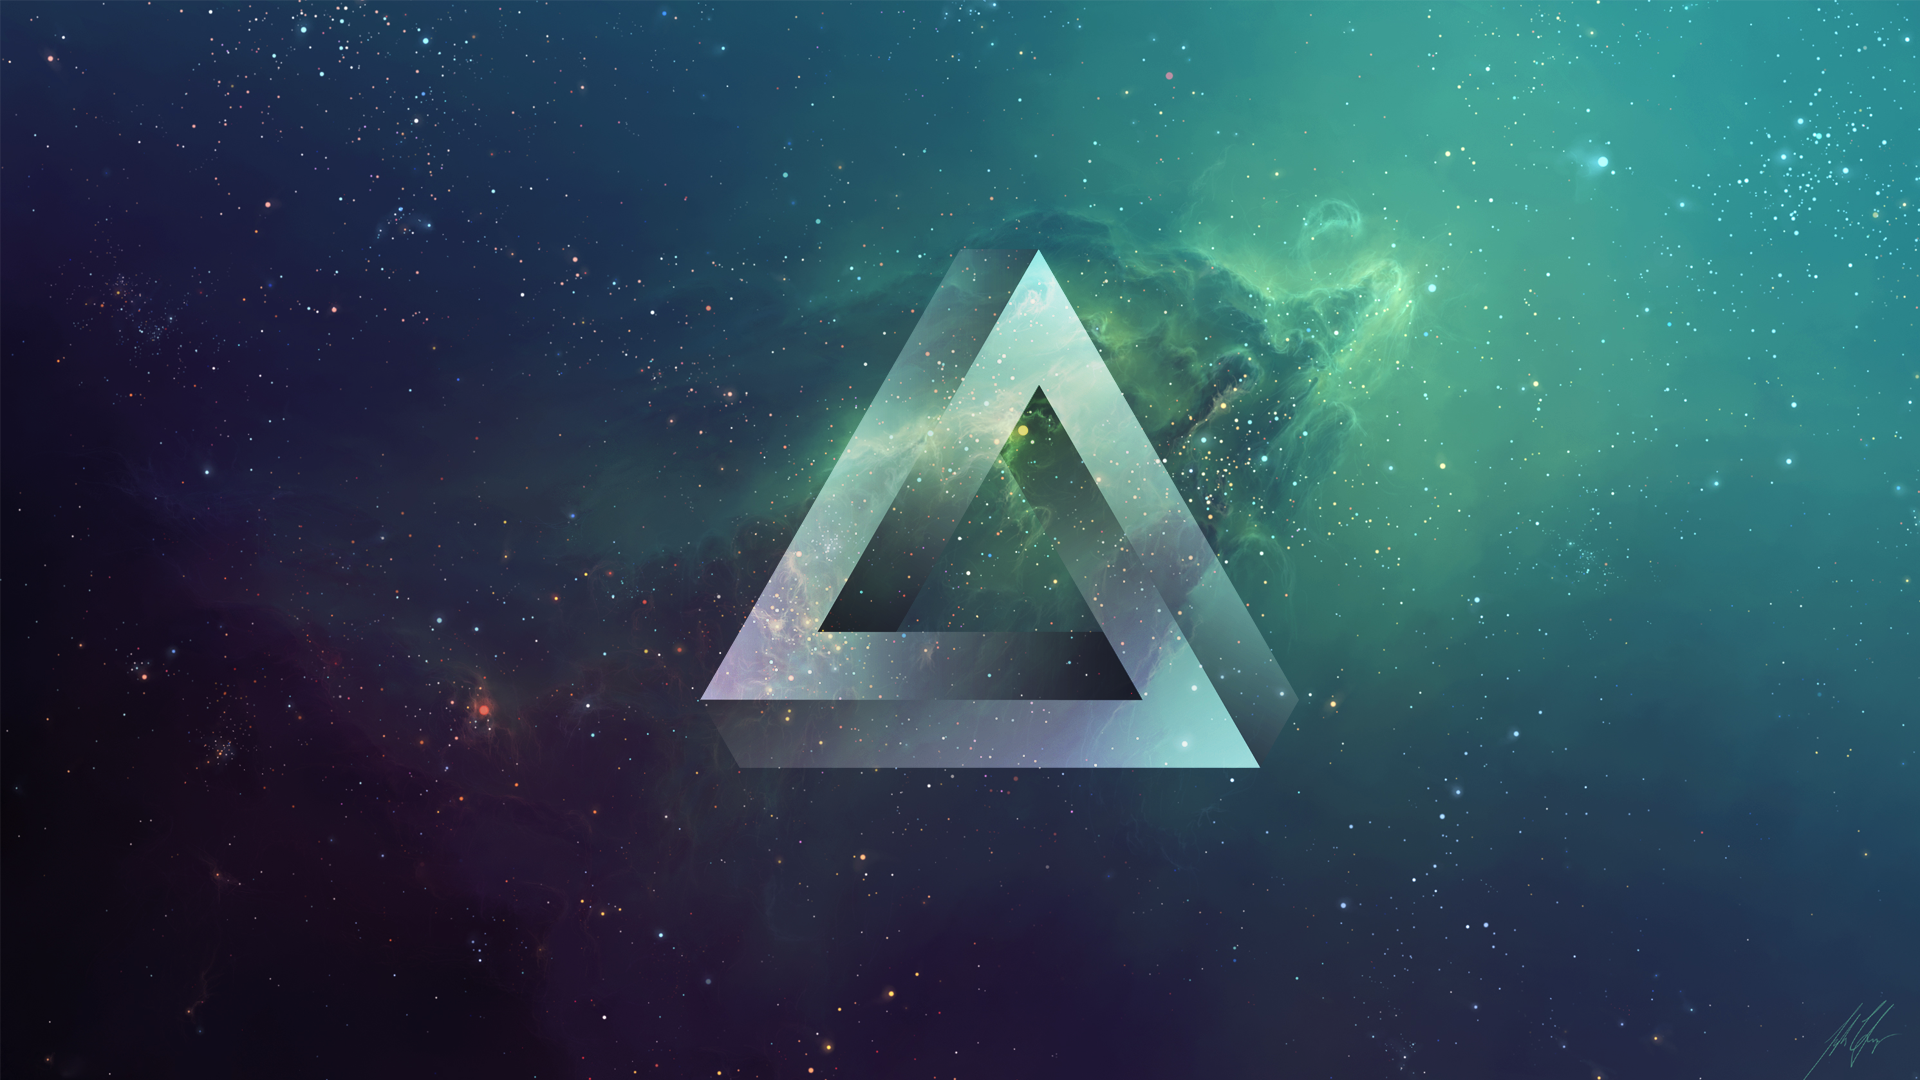 1920x1080 Impossible Triangle From Request Inspiration For Logo